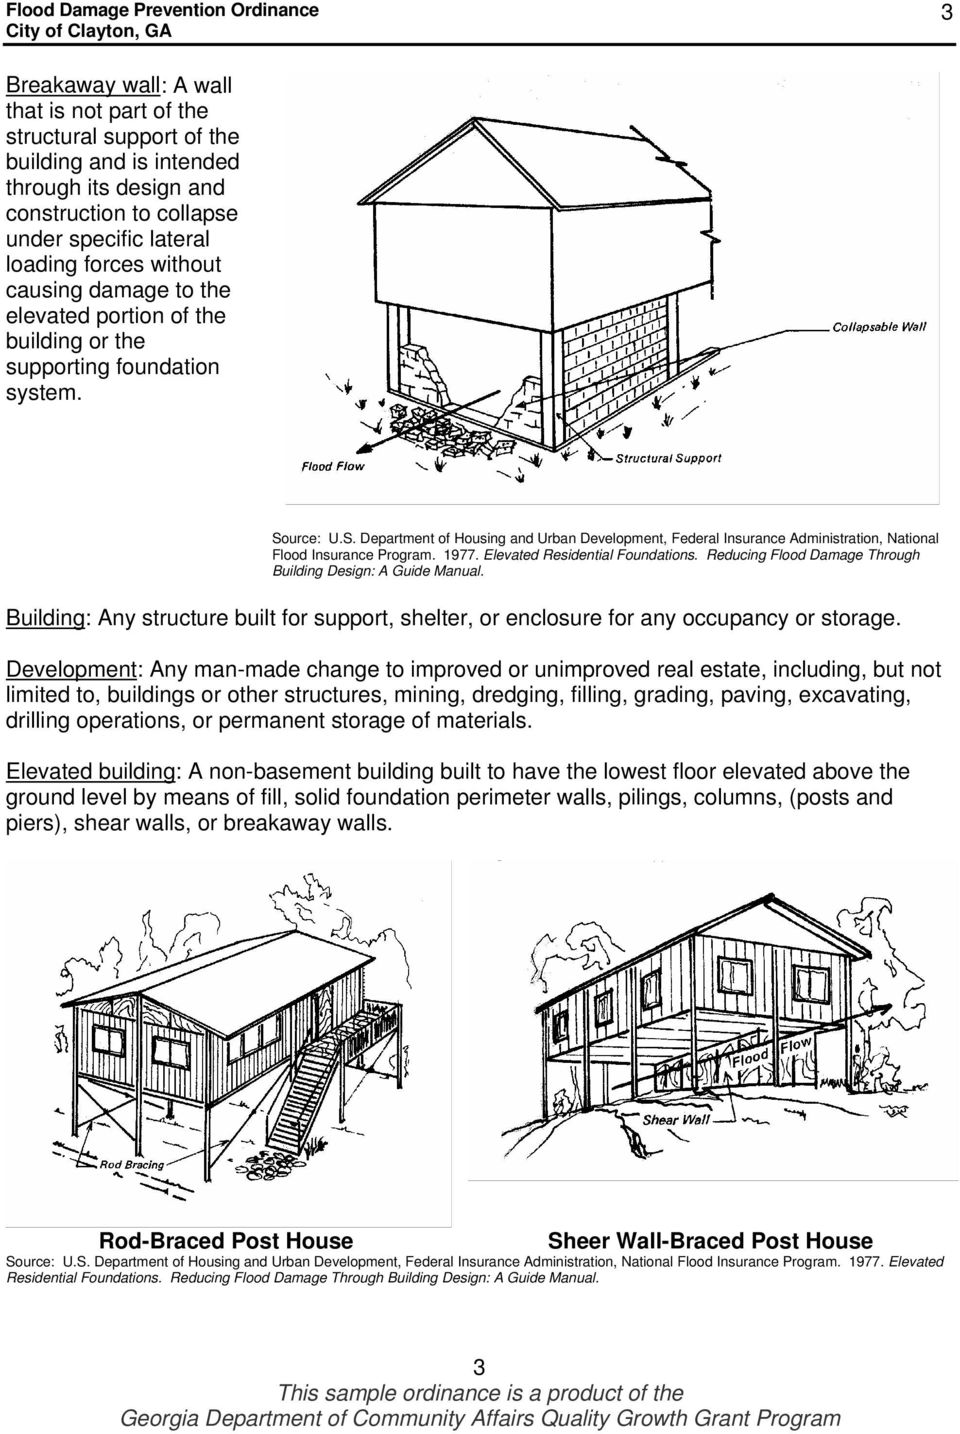 urce: U.S. Department of Housing and Urban Development, Federal Insurance Administration, National Flood Insurance Program. 1977. Elevated Residential Foundations.